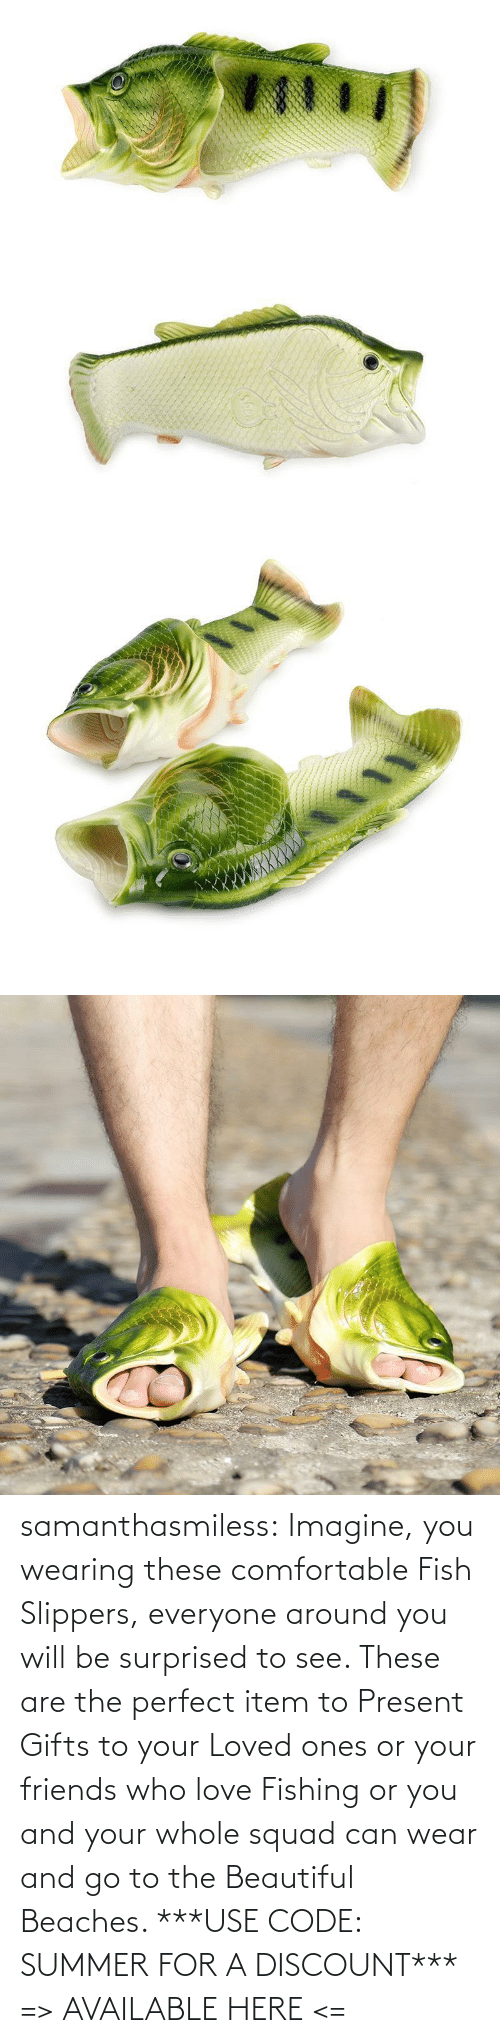 code: samanthasmiless: Imagine, you wearing these comfortable Fish Slippers, everyone around you will be surprised to see. These are the perfect item to Present Gifts to your Loved ones or your friends who love Fishing or you and your whole squad can wear and go to the Beautiful Beaches.  ***USE CODE: SUMMER FOR A DISCOUNT*** => AVAILABLE HERE <=